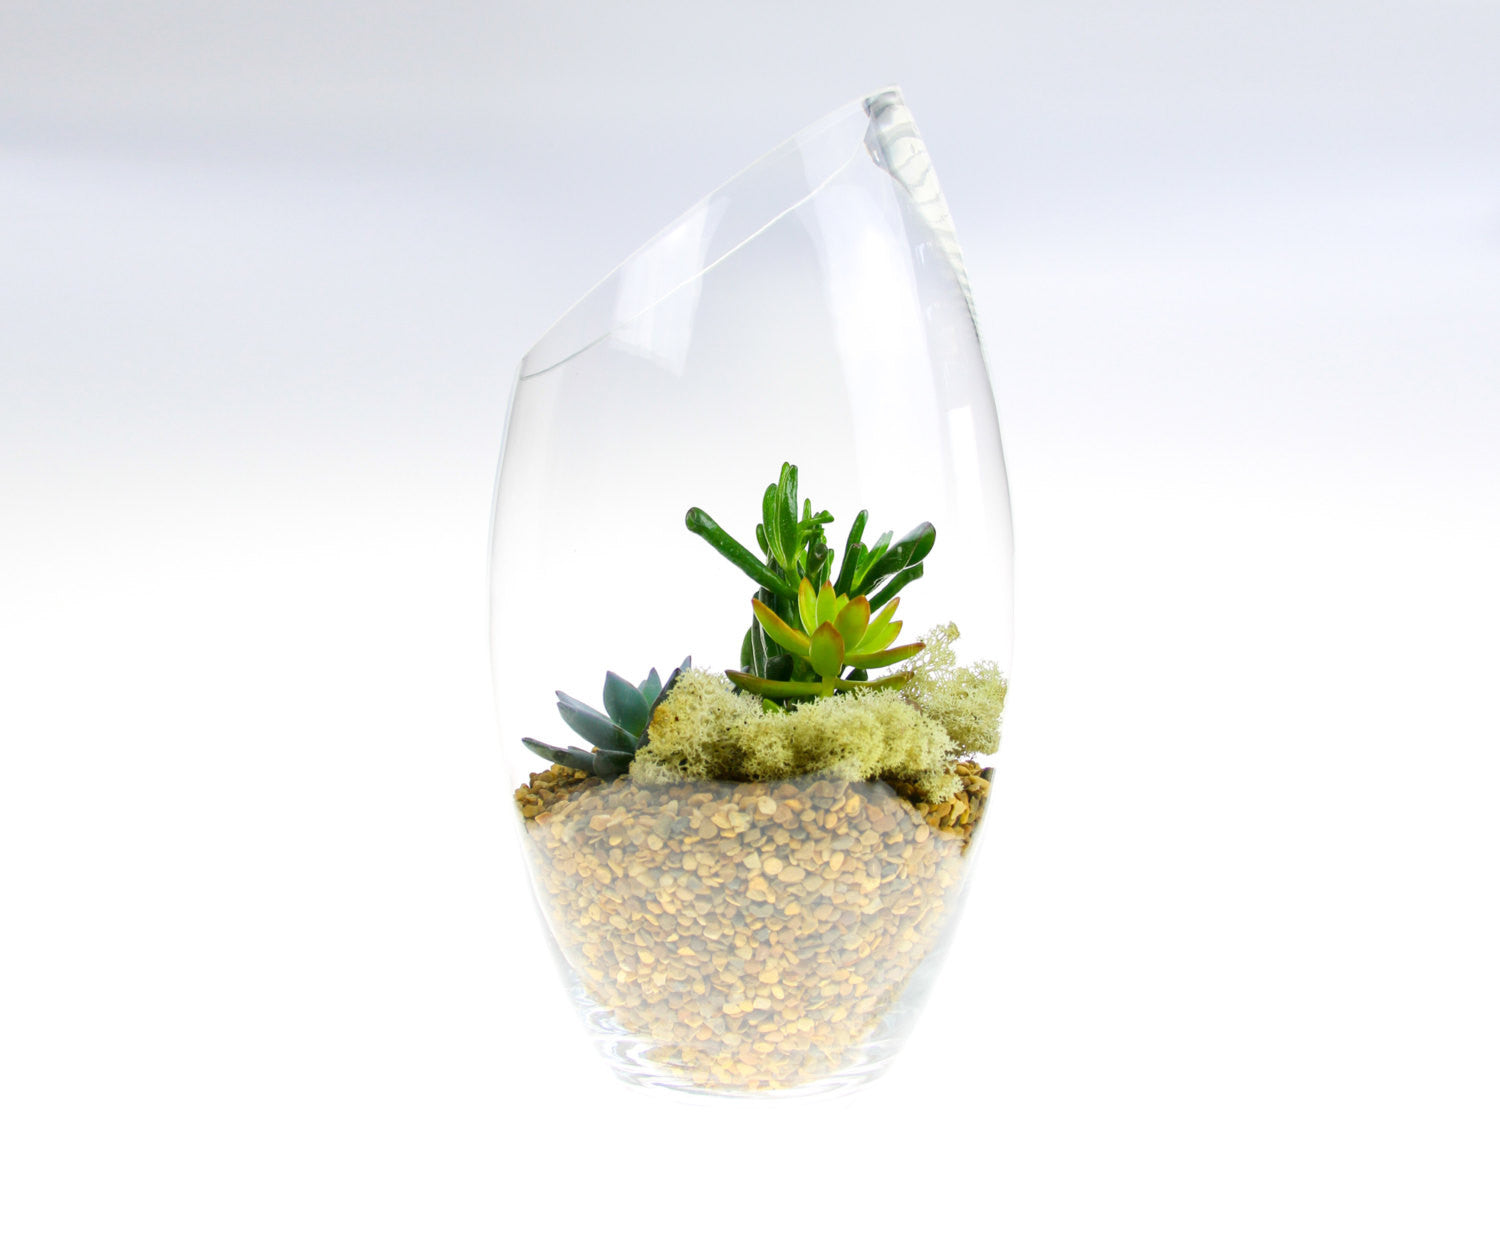 Tall Contemporary Glass Terrarium Kit With Living Succulent Plants